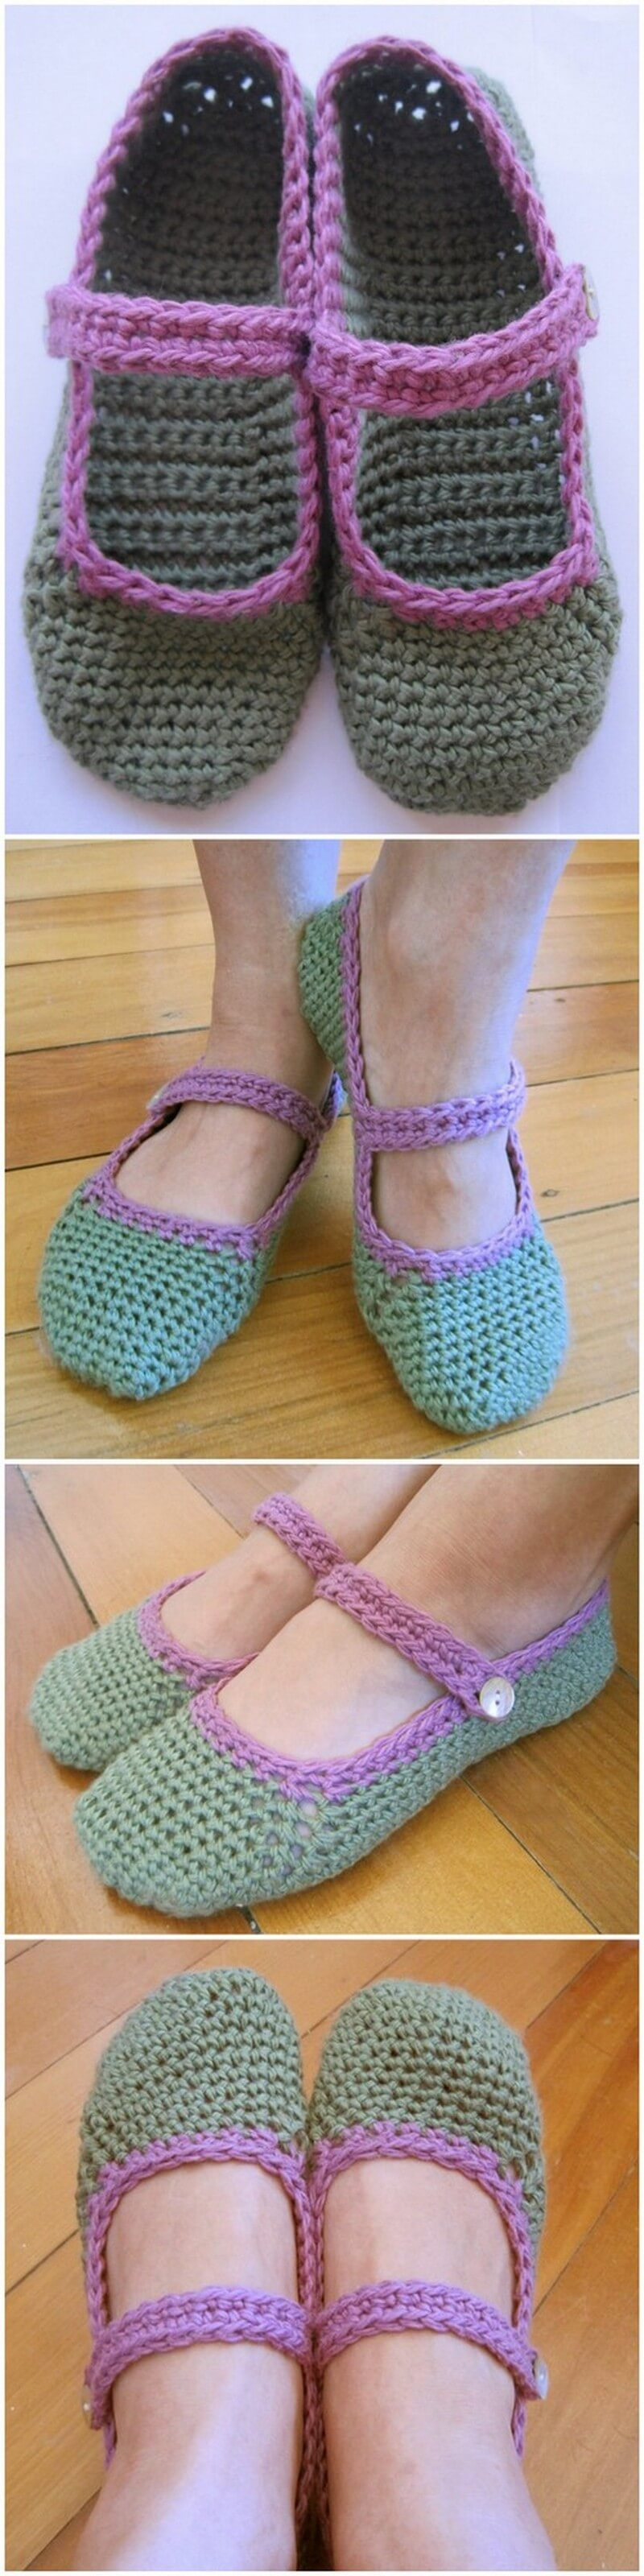 Crochet Slipper Pattern (39)